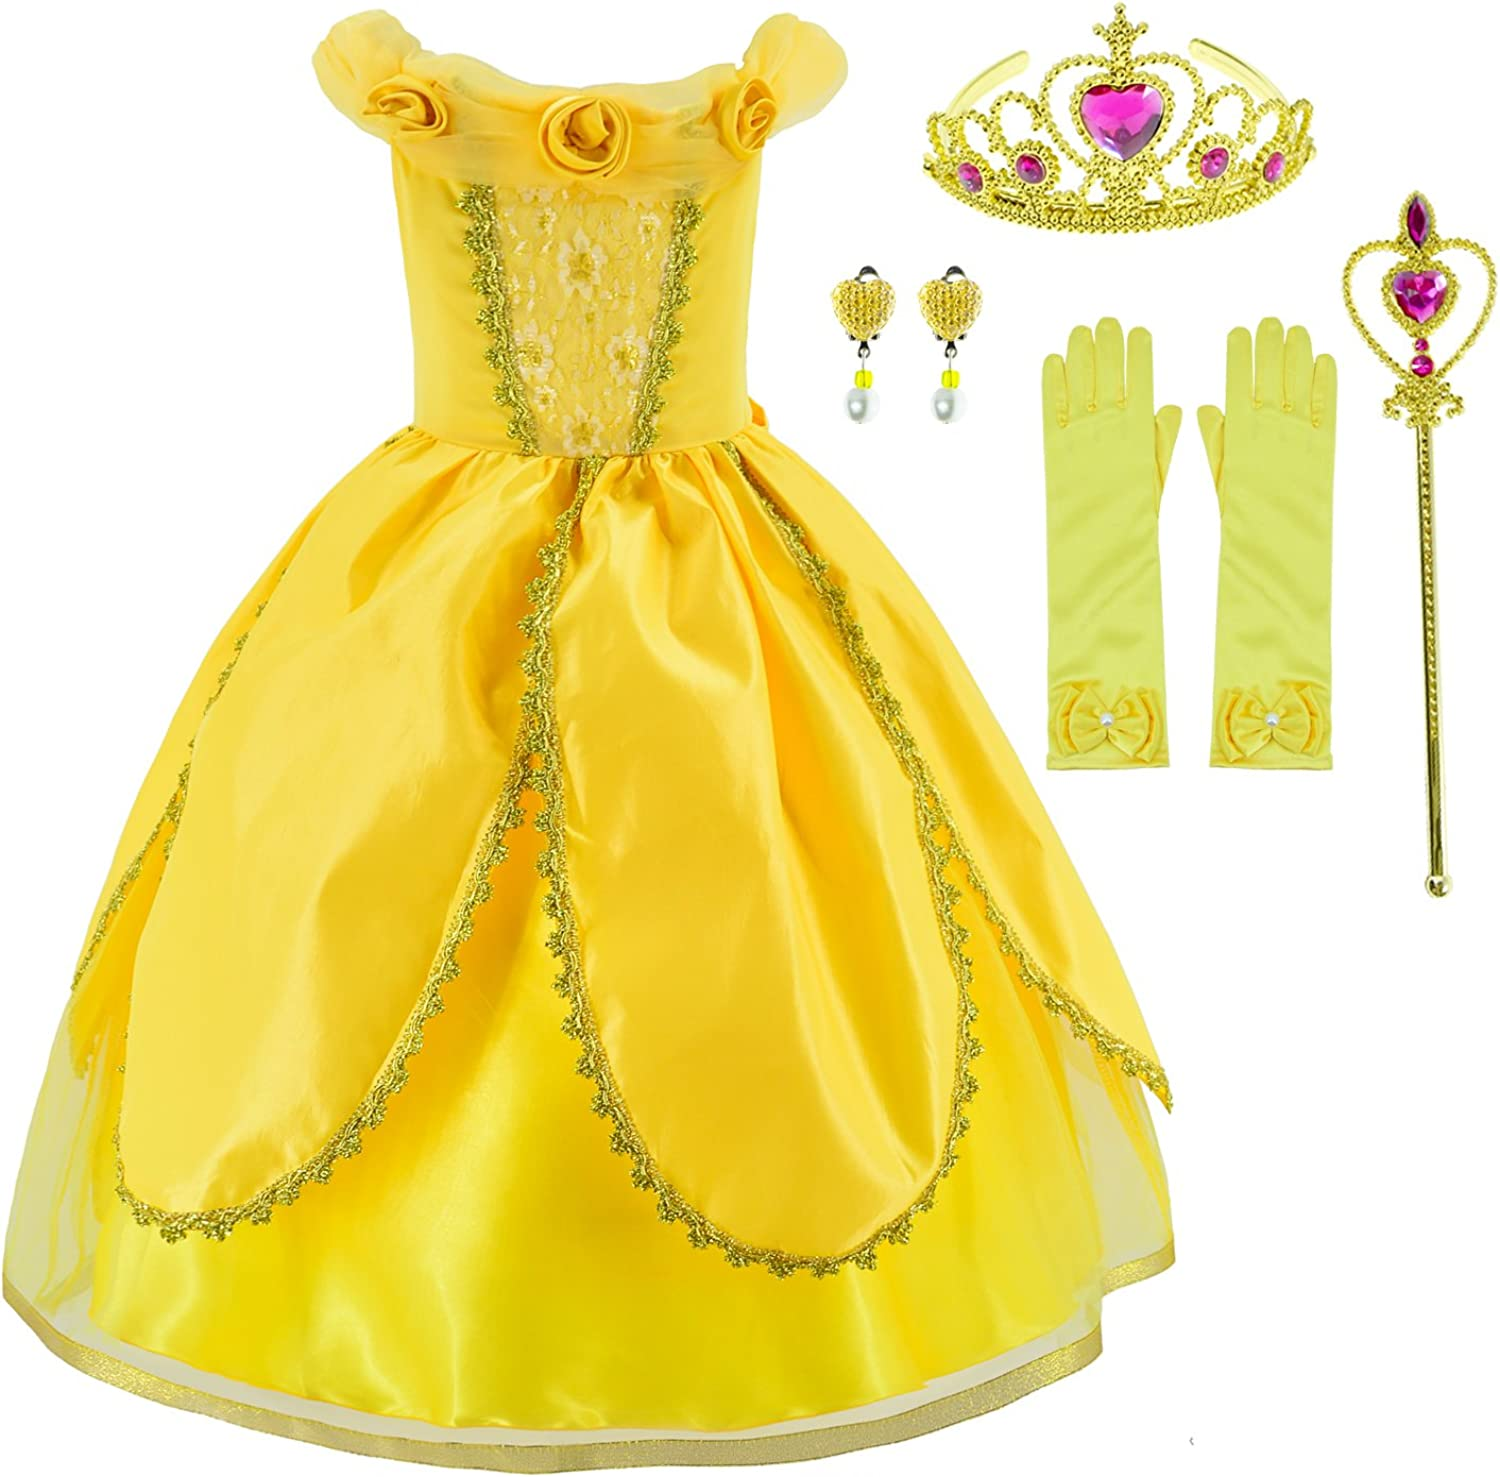 Birthday Party for Toddler with Accessories Dress Up Girls Princess Dress Costume